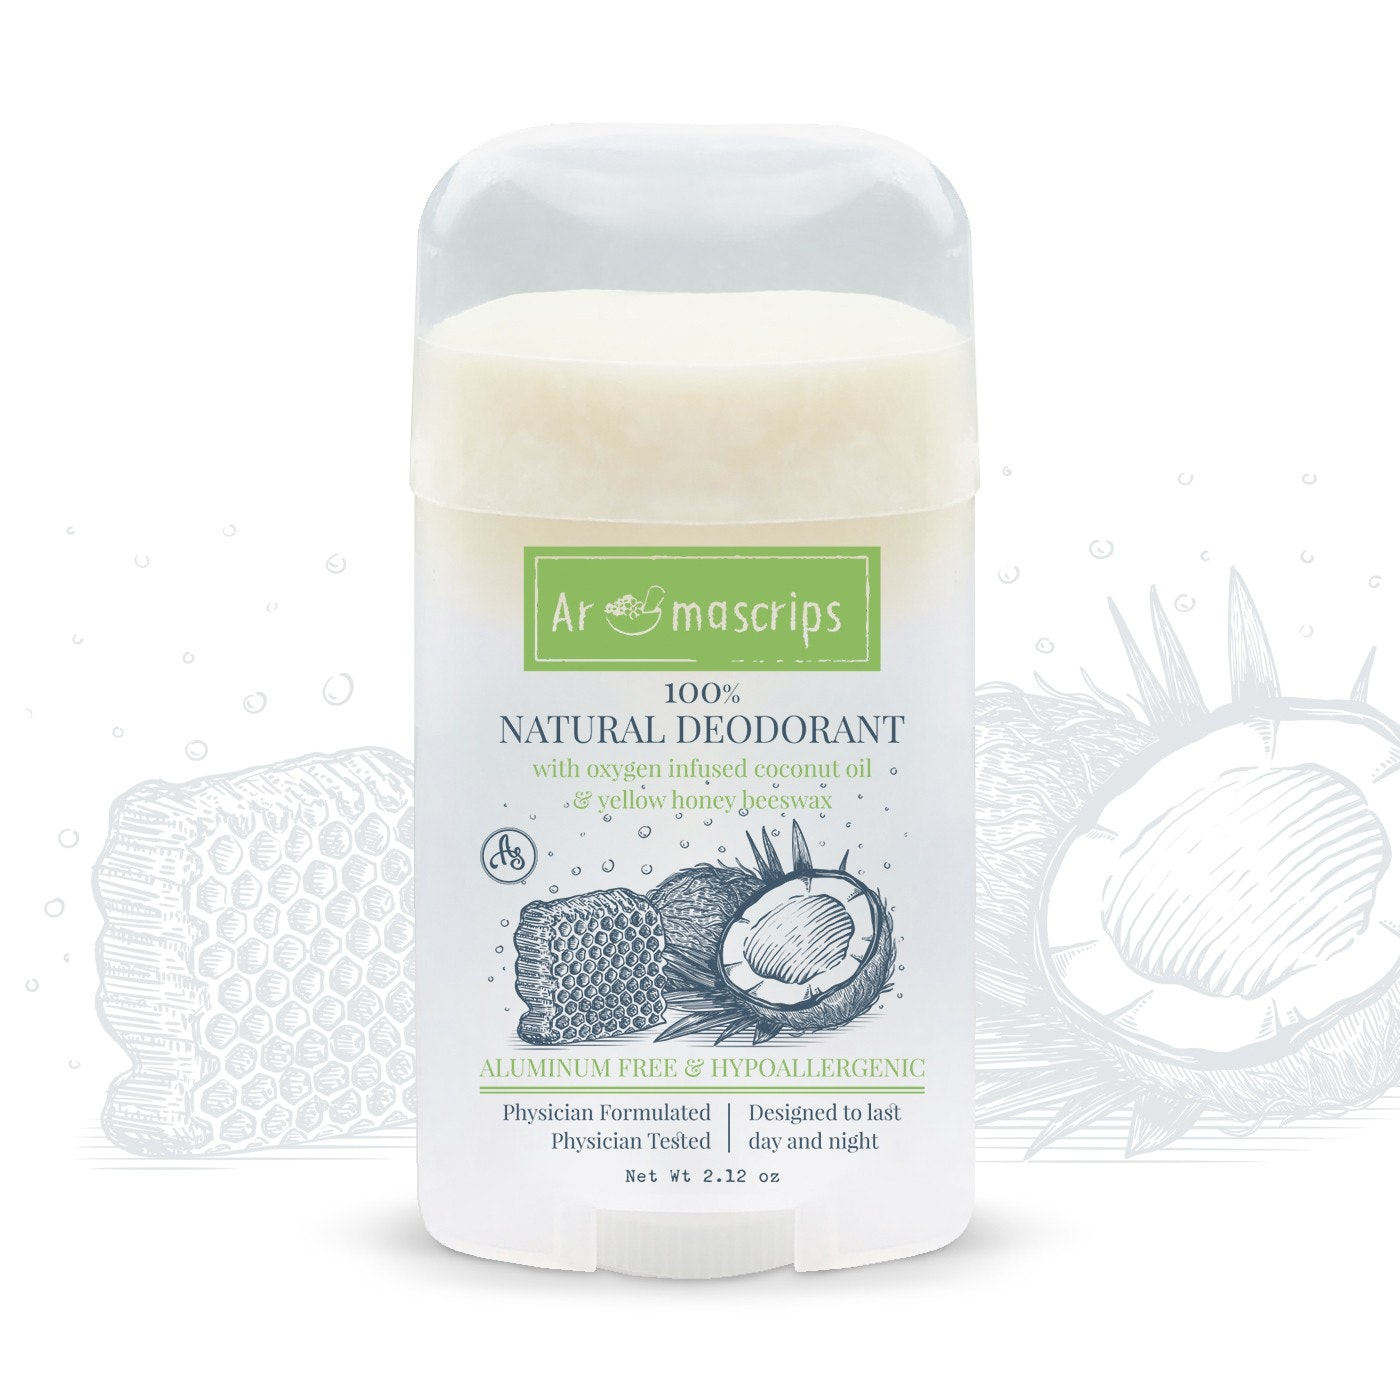 Natural Deodorant packaging